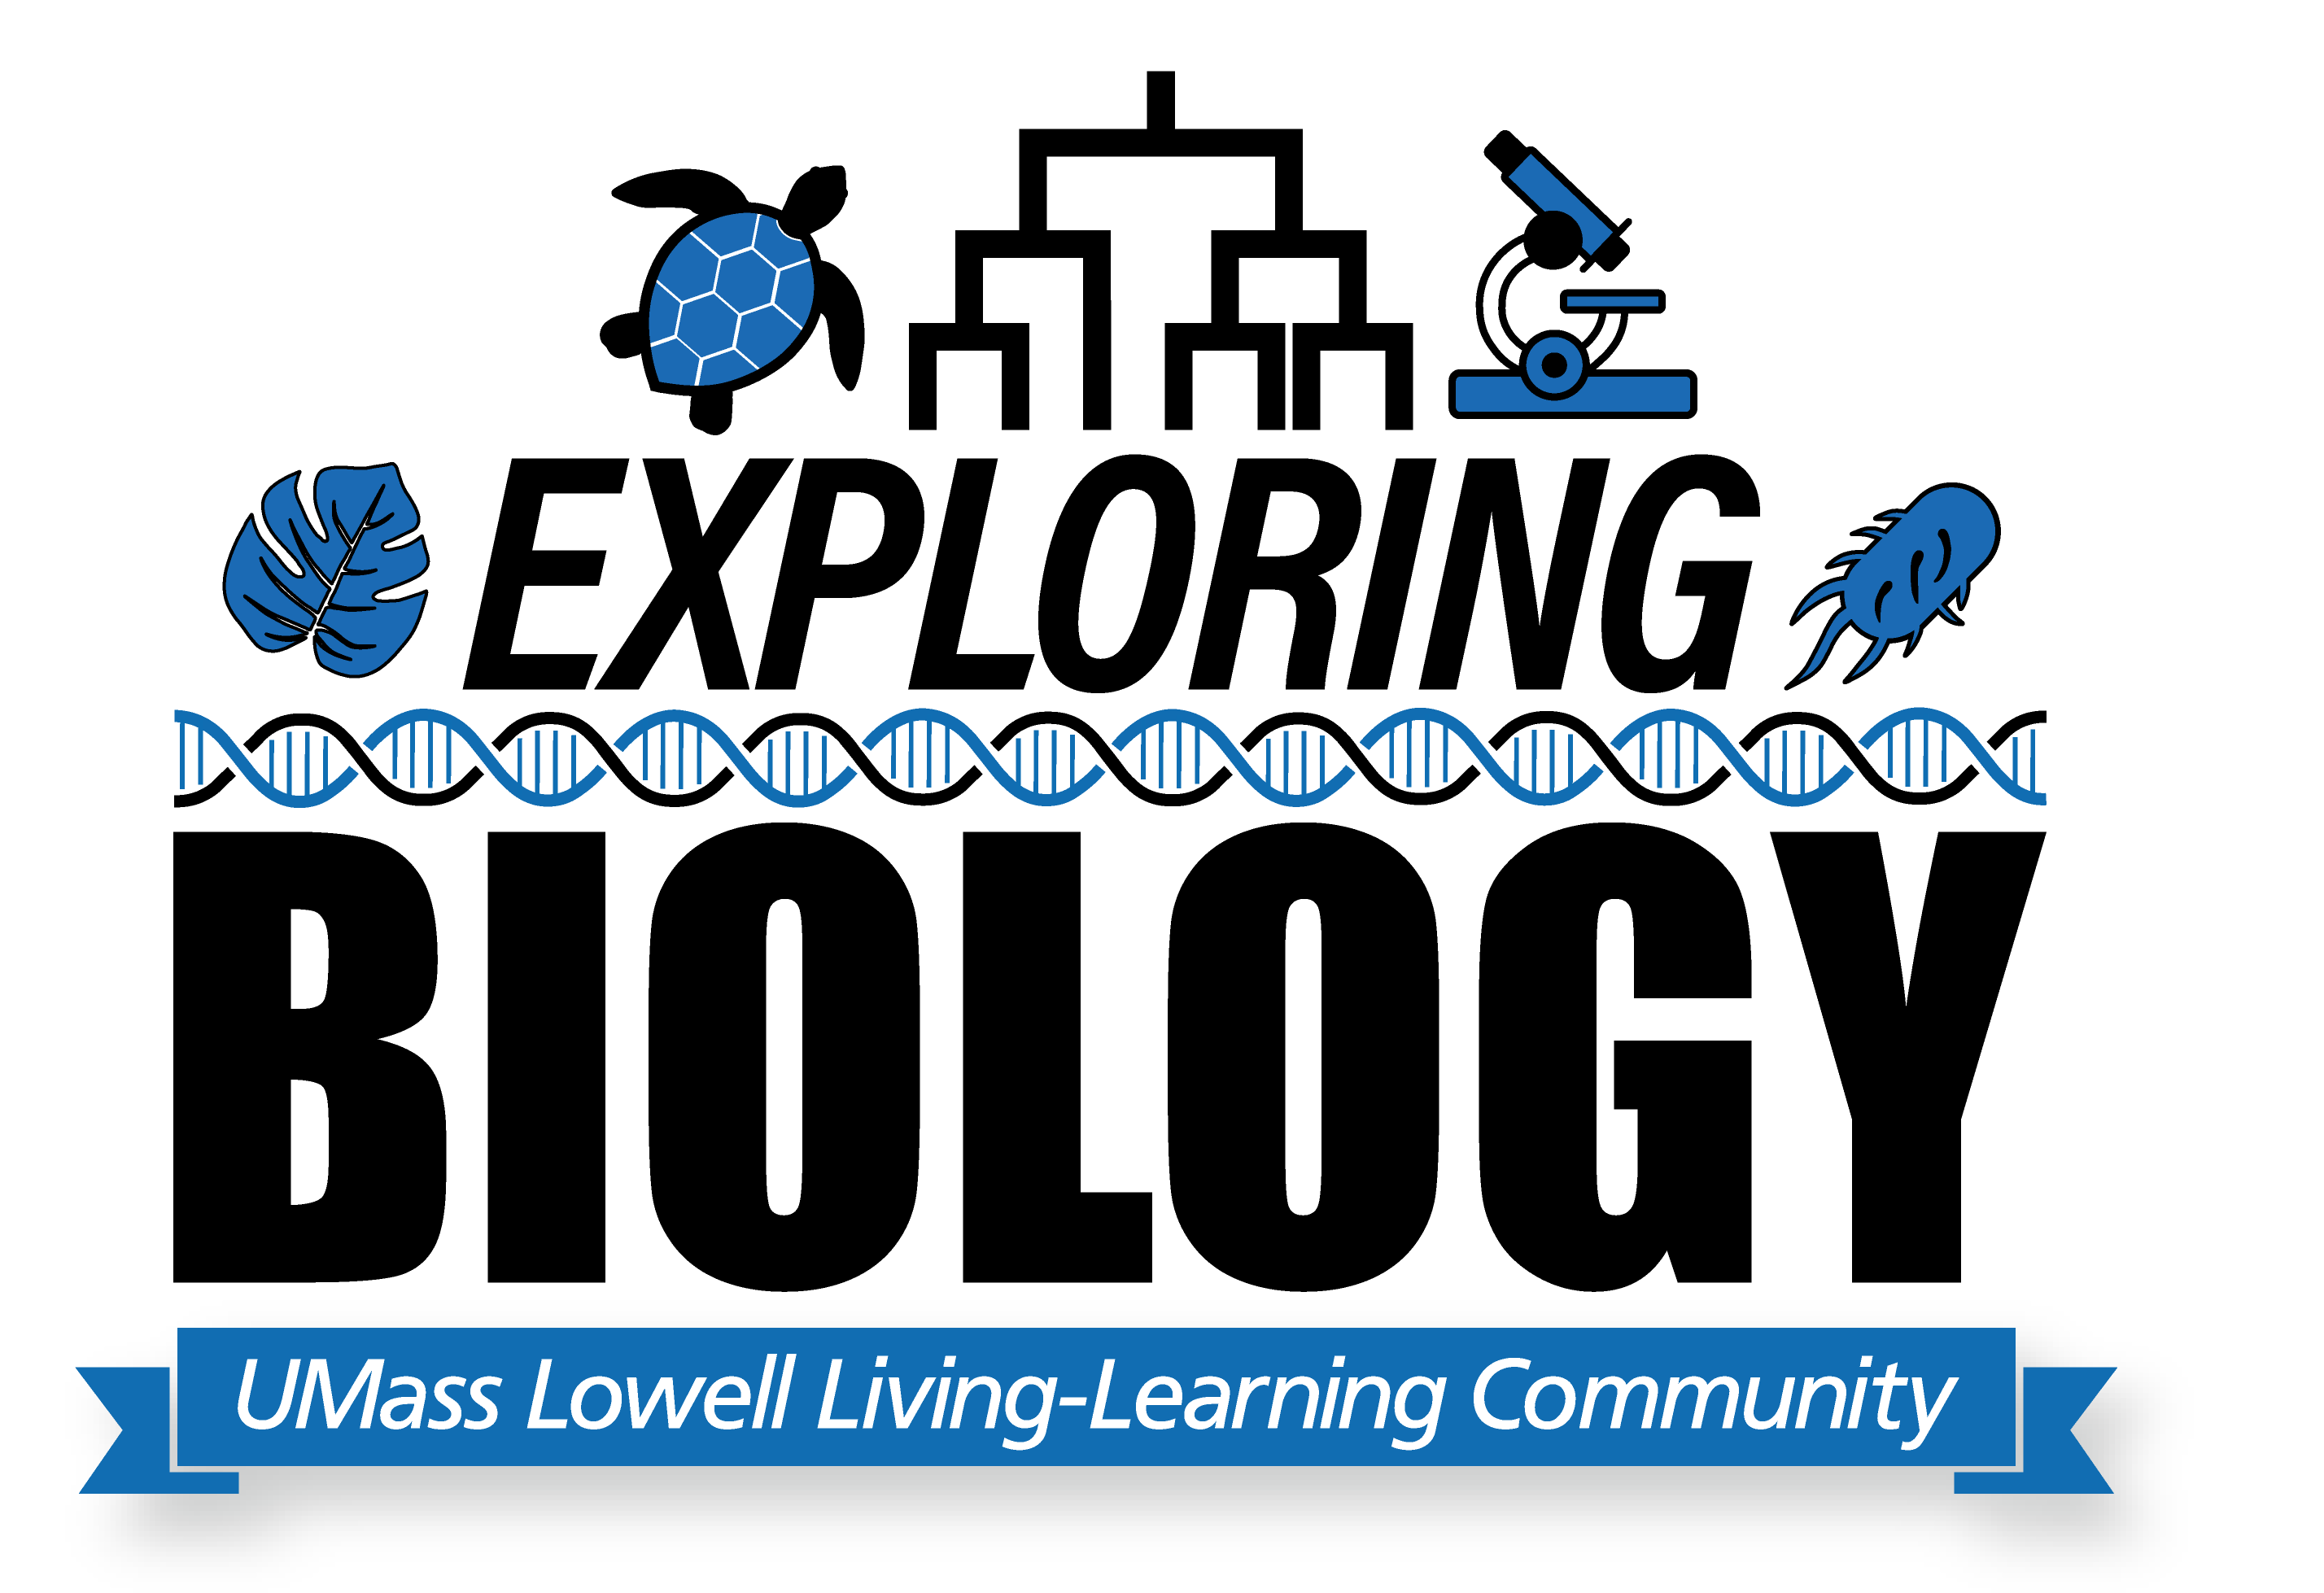 Explore Biology LLC graphic. The Exploring Biology Living-Learning Community is designed for students interested in exploring the breadth of biological studies. Students with interests from molecular biology to biology of organs and organisms, to ecological systems will gain exposure to the diversity of issues in the field and explore career options open to a diversity of biologists.